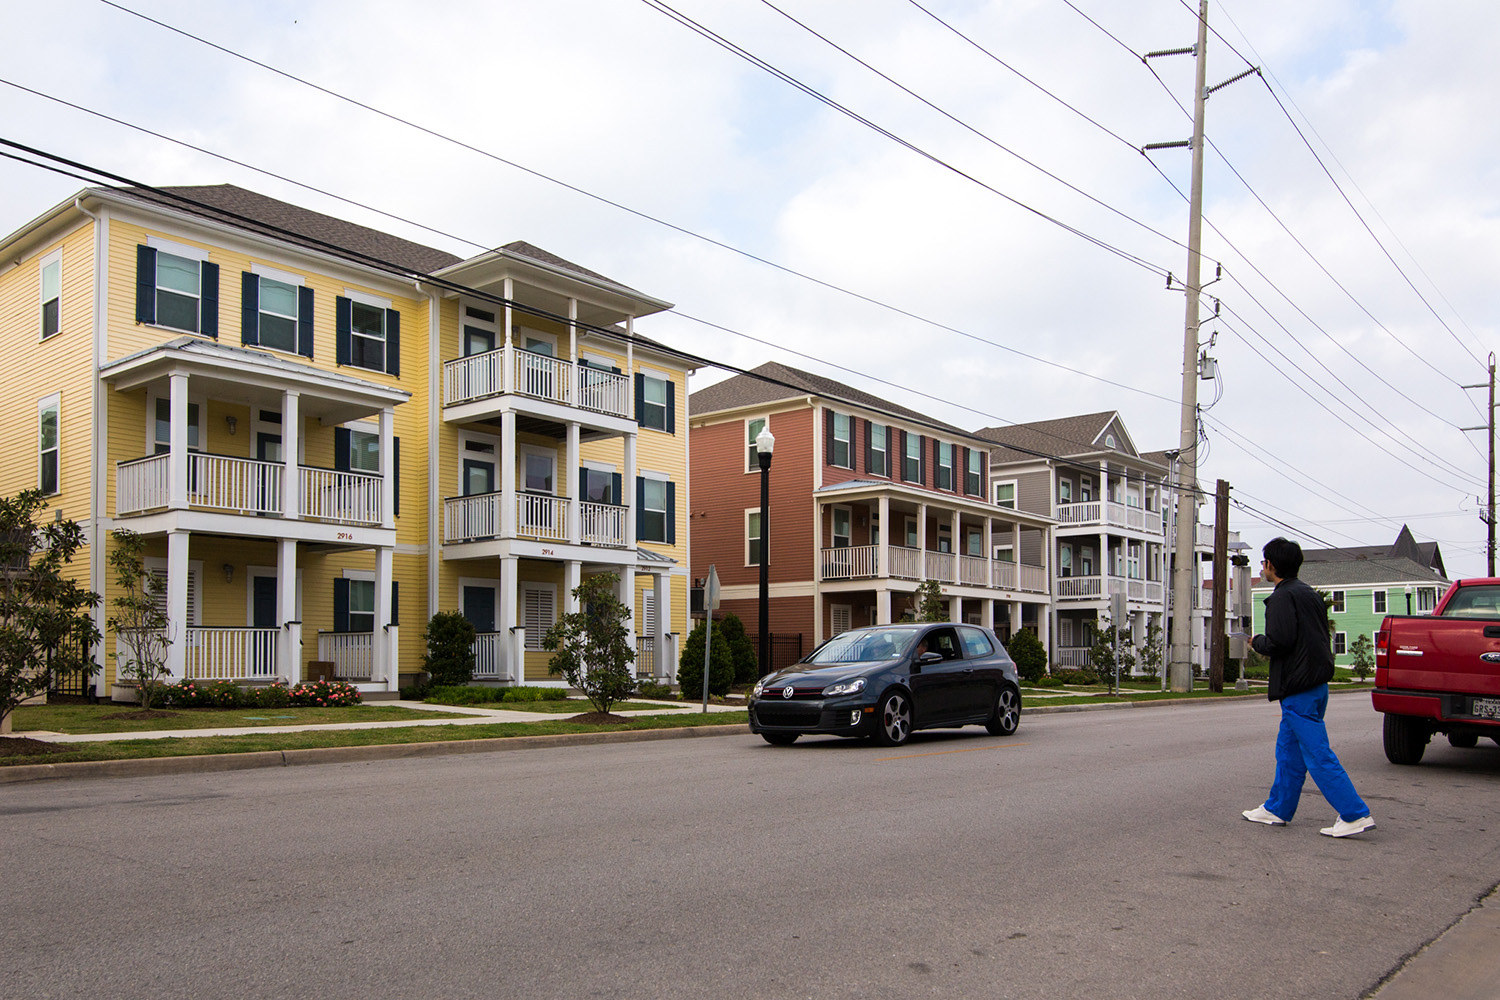 Mixed-income housing developments such as the Cedars at Carver Park won praise from fair housing advocates, but they account for less than one-third of the units that must be rebuilt.